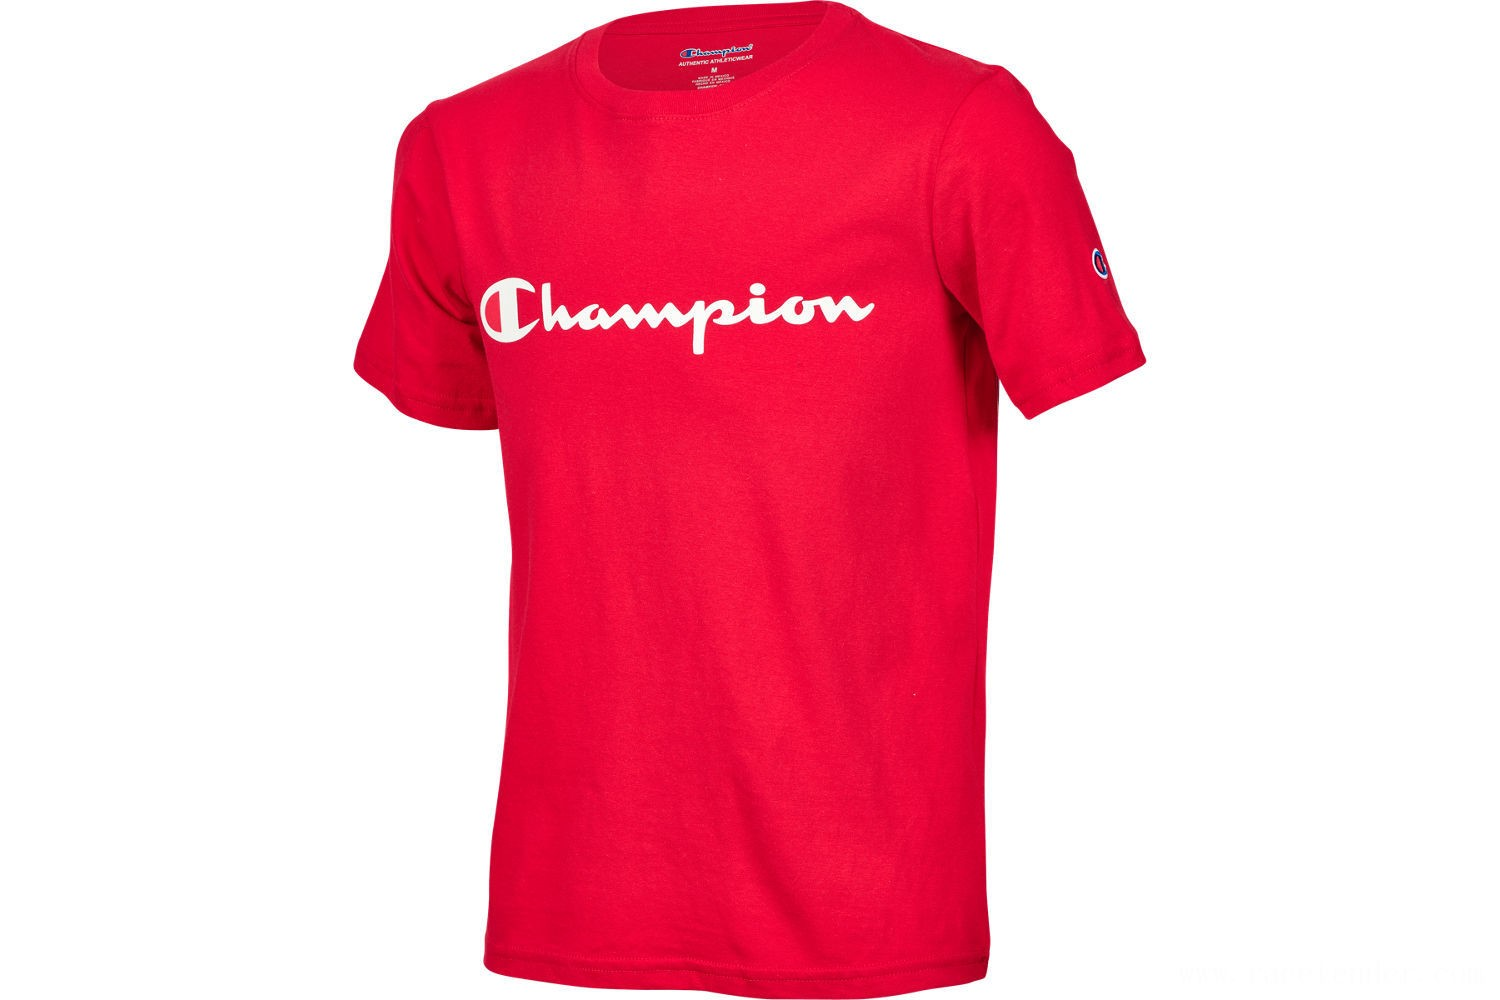 Champion Kids' Heritage T-Shirt - Scarlet Red